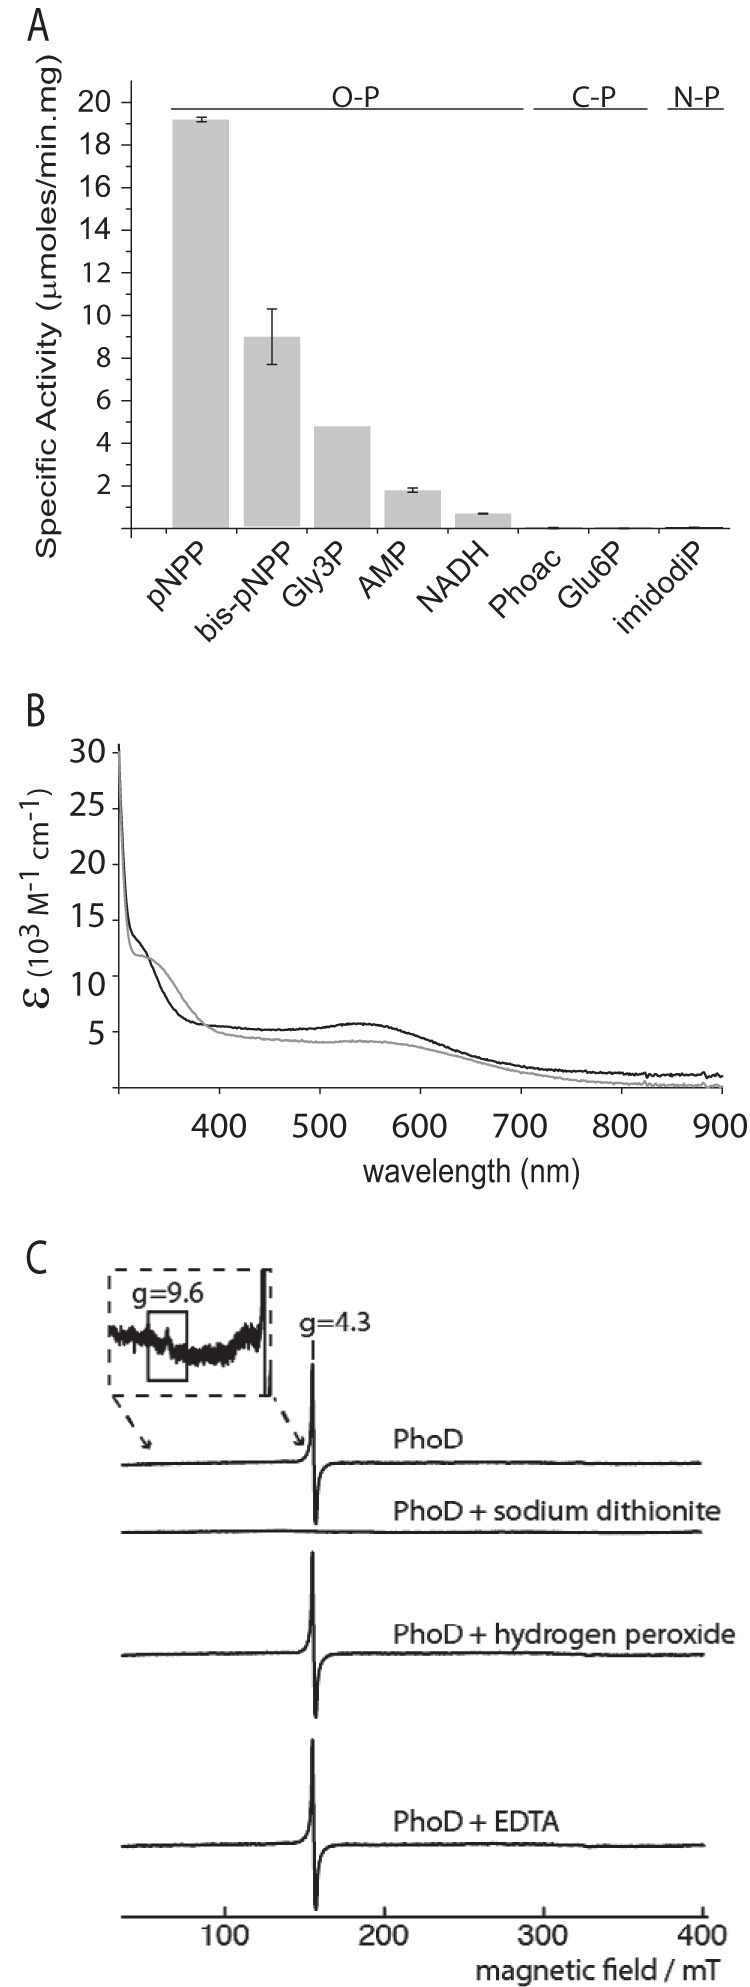 Characterization of recombinant B. subtilis PhoD. A , phosphate released from different substrates by PhoD. The assays contained 1 μg/ml PhoD and 1 m m of the test substrate in 100 m m Tris, pH 8.0, 2 m m CaCl 2 . Gly3P is glycerol 3-phosphate; Phoac is phosphonoacetic acid; Glu6P is glucose 6-phosphate; imidodiP is imidodiphosphate. Substrates are grouped according to whether the target bond is between phosphorus and oxygen (O–P), phosphorus and carbon (C–P), or phosphorus and nitrogen (N–P). Error bars indicate the S.D. of three independent experiments. B , visible absorption spectrum of 2.3 mg/ml PhoD in 20 m m Hepes NaOH, pH 7.4, 200 m m NaCl, 1 m m CaCl 2 in the absence ( black ) or presence (gray) of 10 m m Na 2 EGTA. C , EPR spectra of PhoD highlighting the g = 4.3 peak. Spectra are shown for native PhoD, PhoD with 5 m m sodium dithionite, PhoD with 2 m m hydrogen peroxide, and PhoD with 50 m m EDTA. The inset shows a magnified part of the spectrum around g = 9.6. The PhoD concentration was 10 mg/ml in 20 m m Hepes, pH 7.5, 400 m m NaCl, 2 m m calcium acetate with 20% (v/v) glycerol added. A control experiment showed that the glycerol added to the samples did not change the spectral line shape (data not shown). EPR operating conditions: microwave power, 2 milliwatts; microwave frequency, 9.425 GHz; modulation, 5.0 G at 100 kHz; temperature, 10 K. Spectra are buffer-subtracted, with negative controls taken for sodium dithionite, hydrogen peroxide, and EDTA solutions.